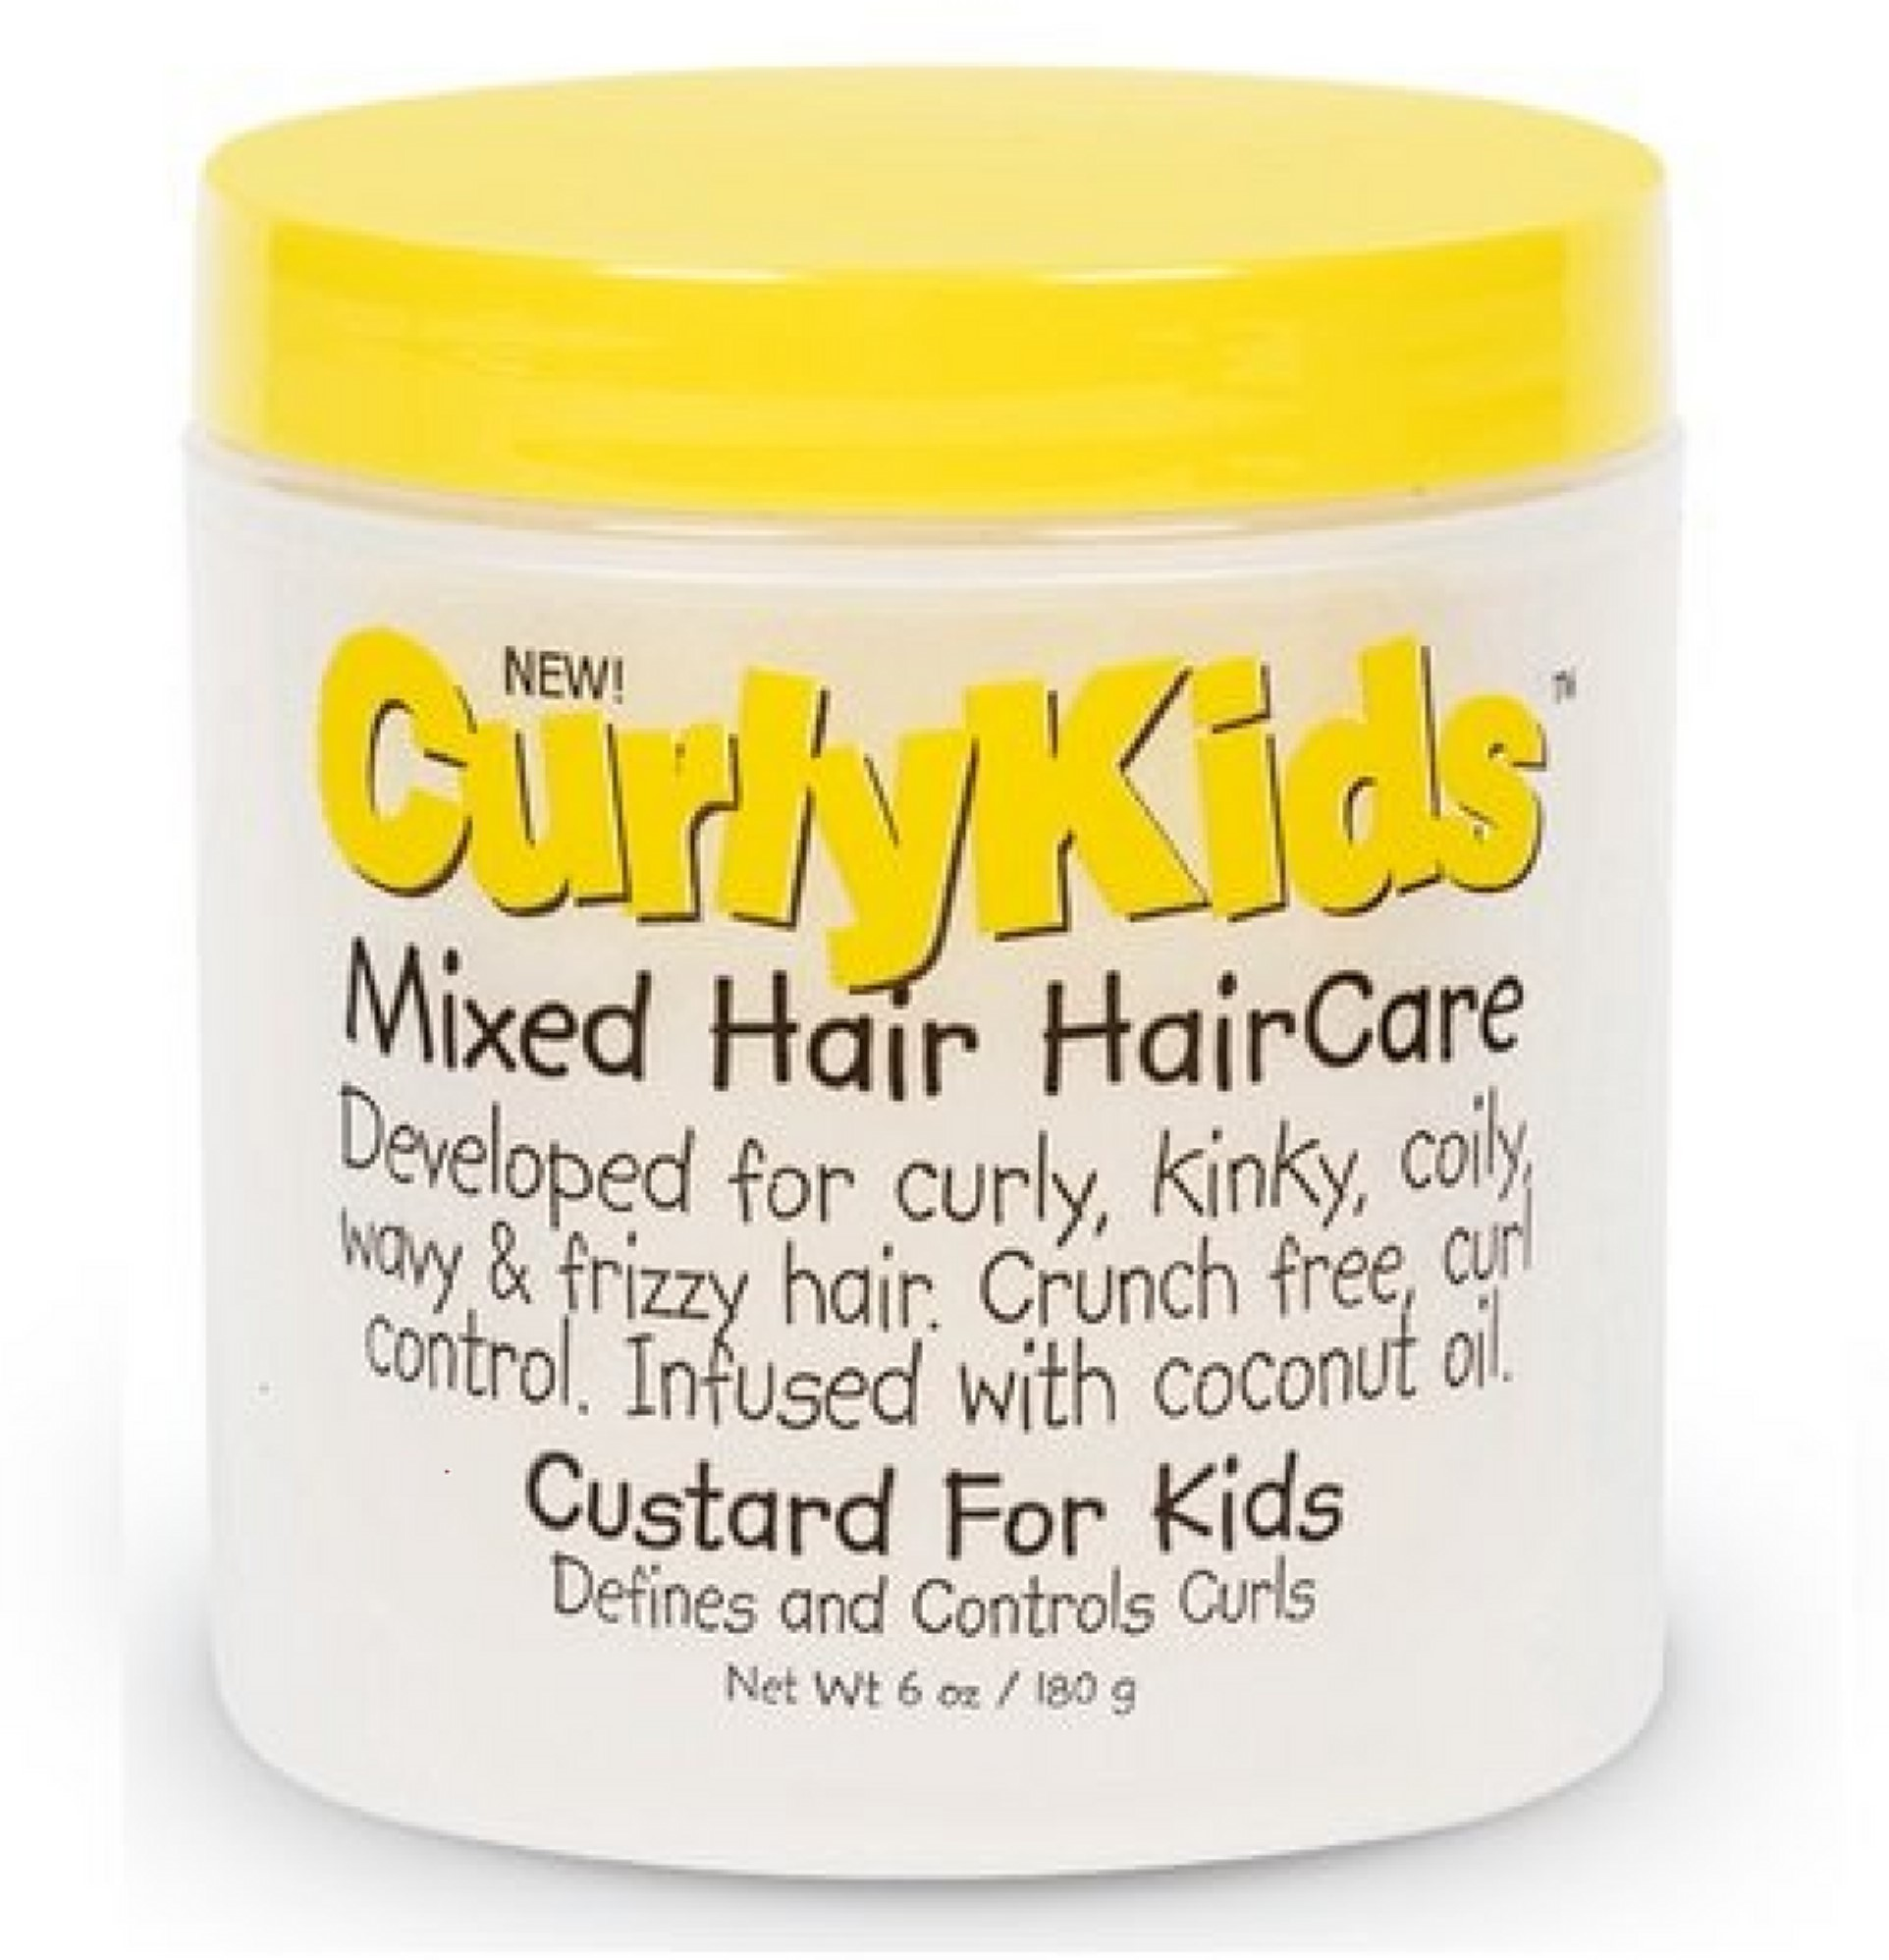 6 Pack - Curly Kids Mixed Hair Haircare Custard for Kids 6 oz